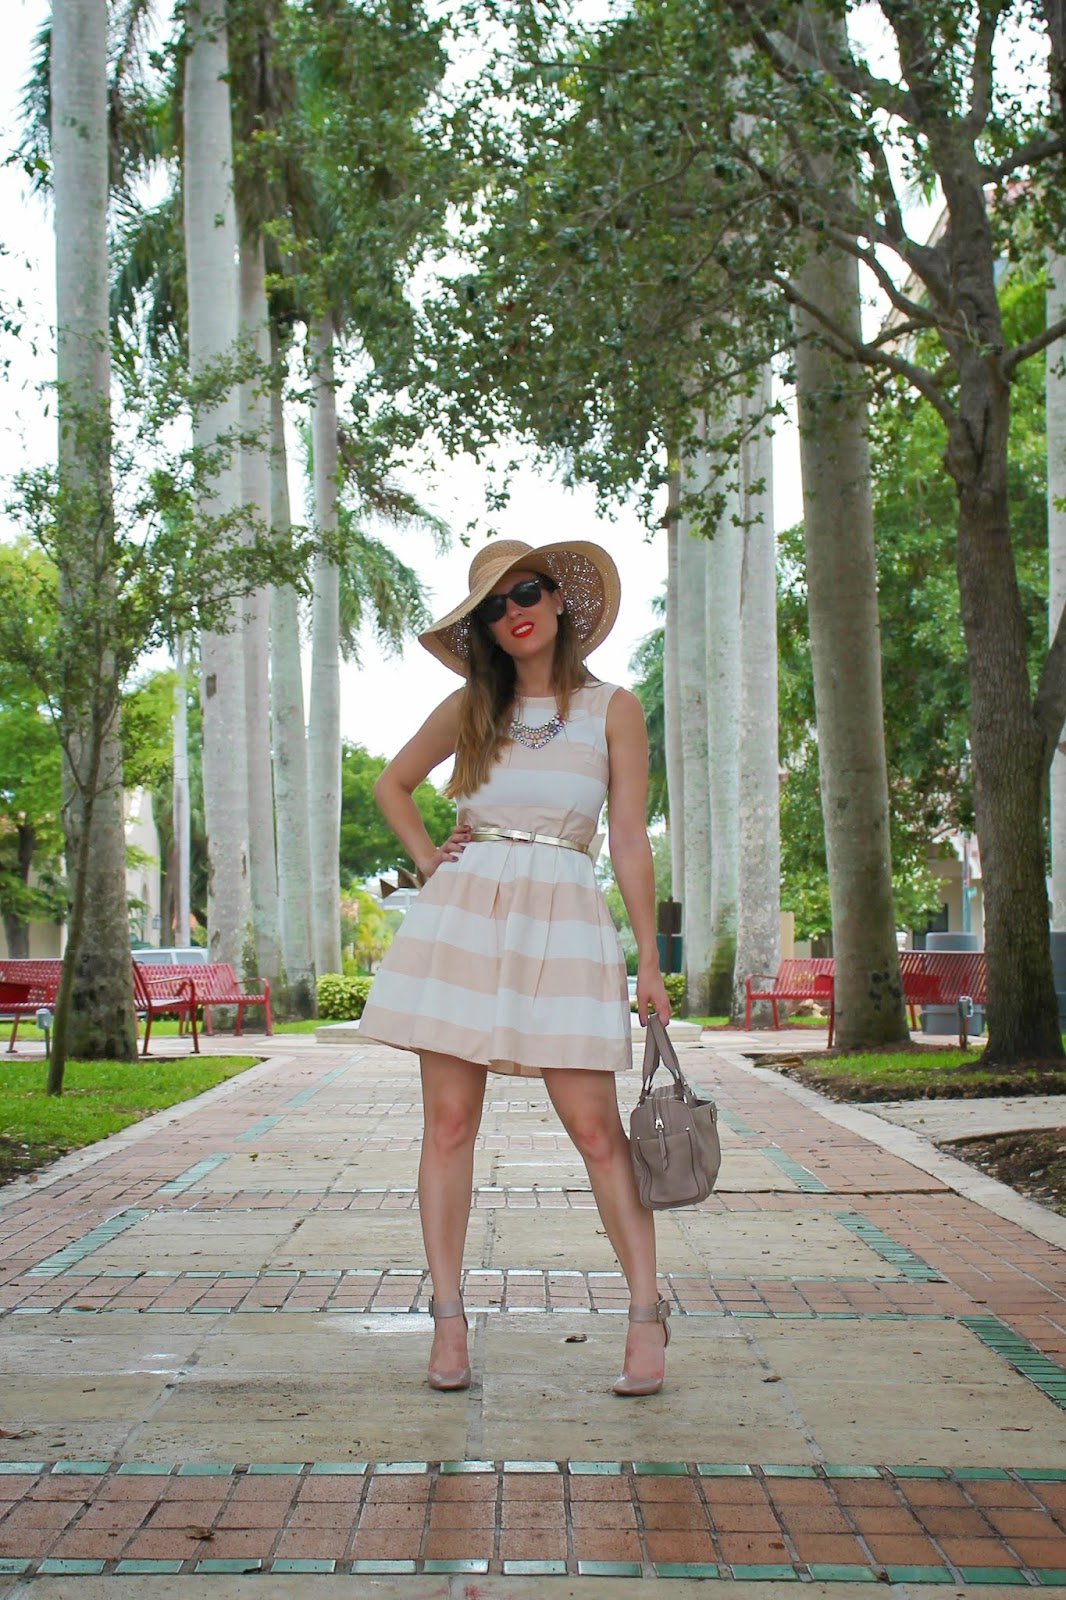 Gap, Gap Lincoln Road, sunhat, classic, prep, metallic, Kate Spade, Nordstrom, Nine West, stripes, Ray-Ban, summer style